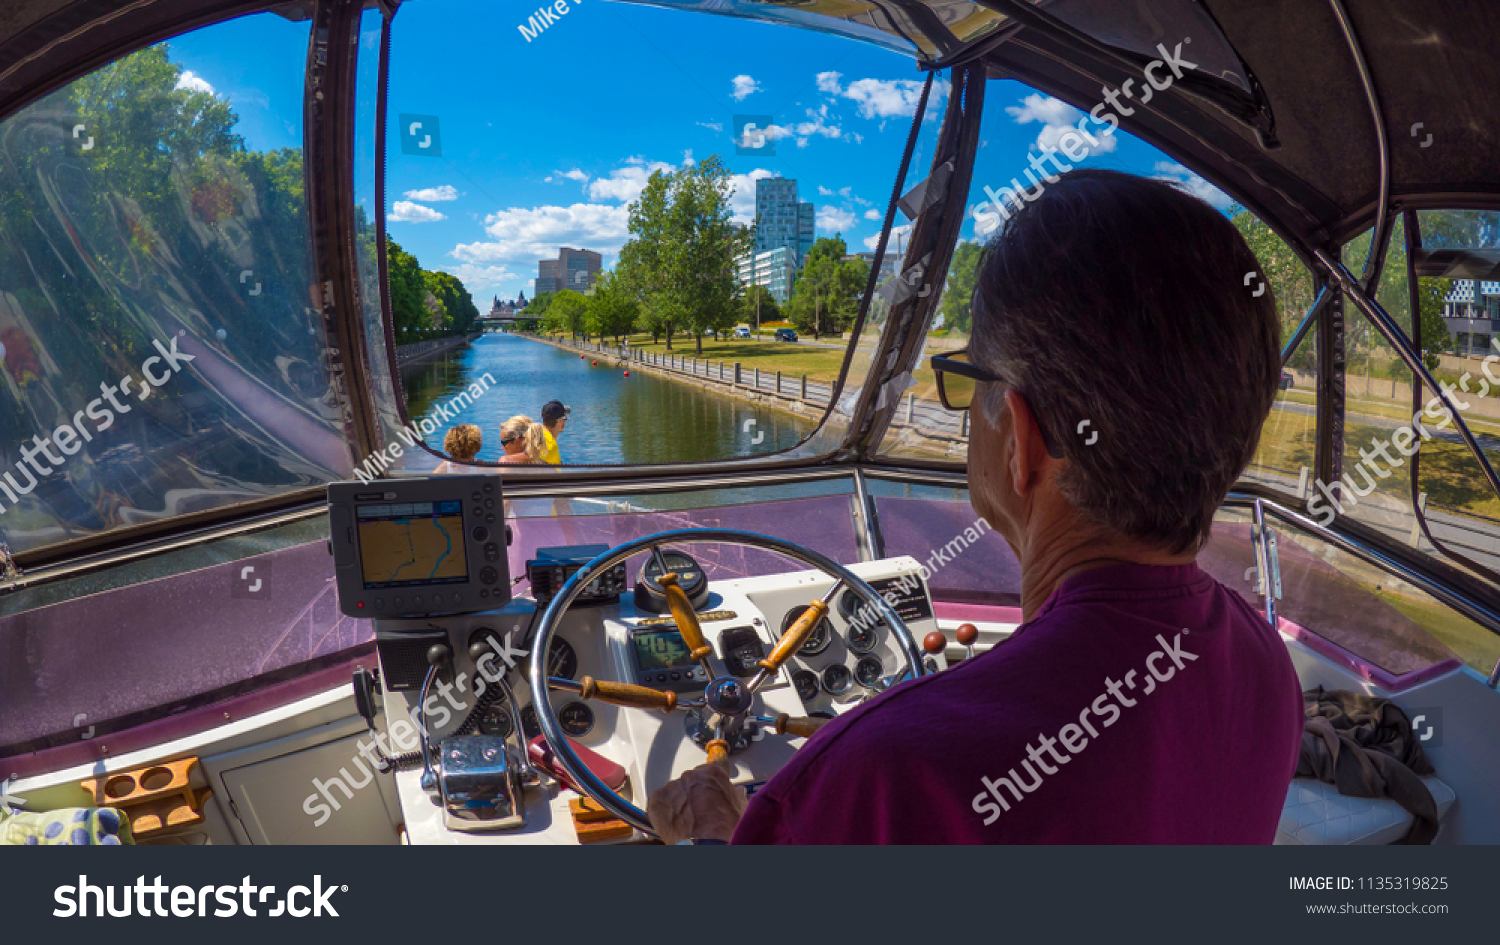 Ottawa Ontario Canada July 7th 2015 Boating Stock Photo (Royalty ...